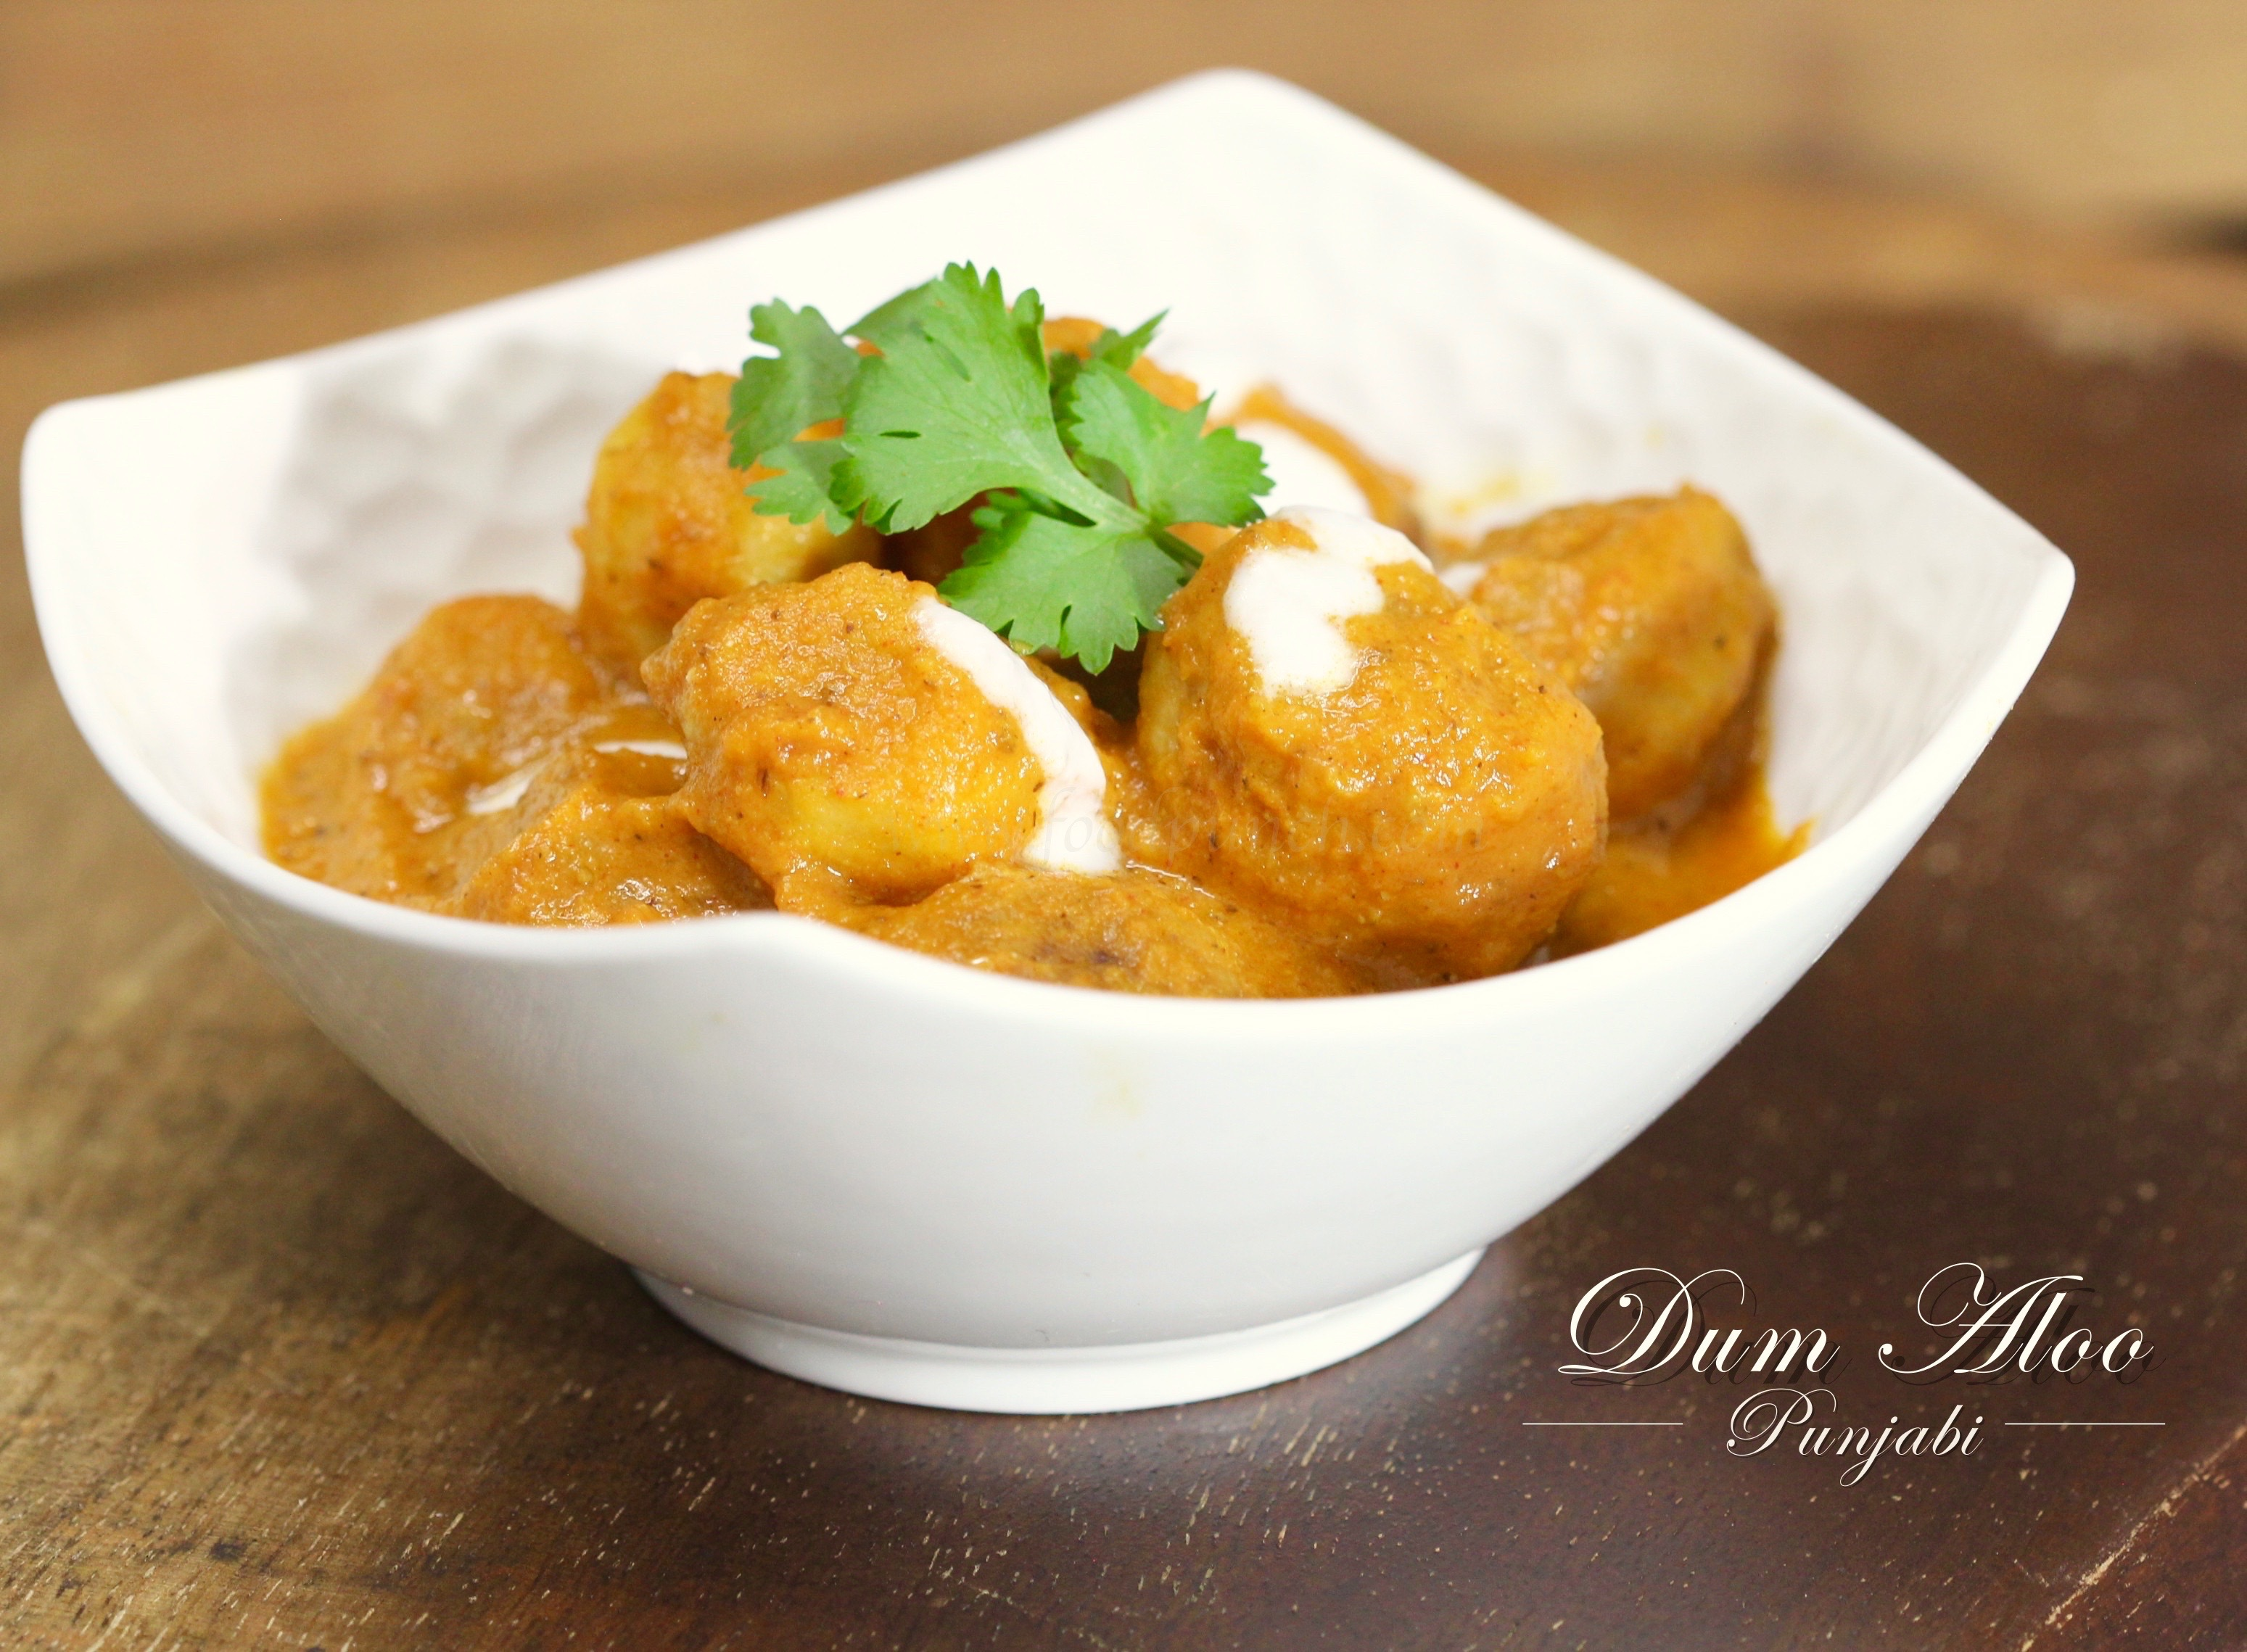 How to make Dum Aloo Punjabi recipe